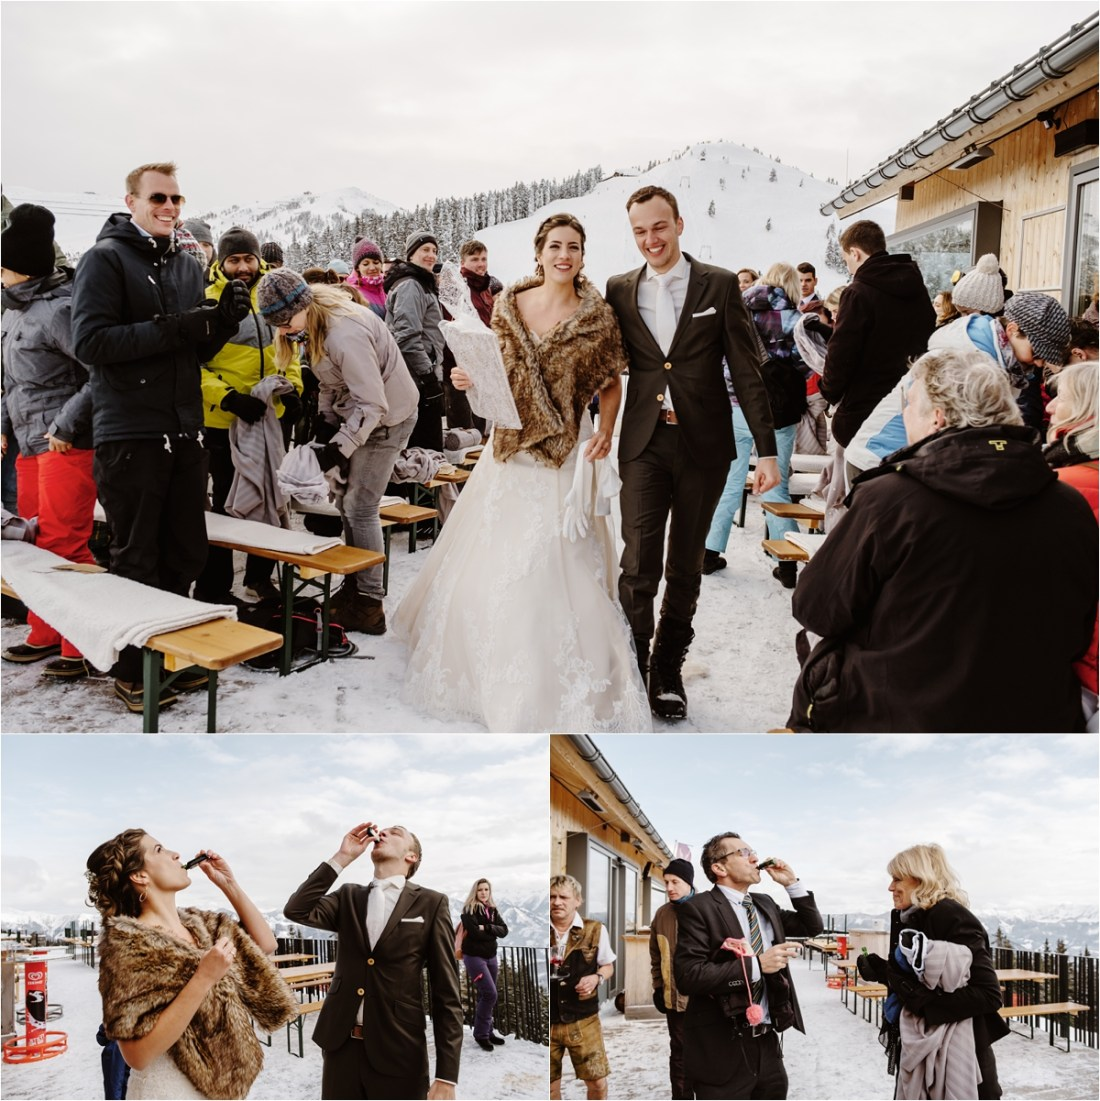 The bride and groom leave the ceremony and have a celebratory Jäger shot by Wild Connections Photography